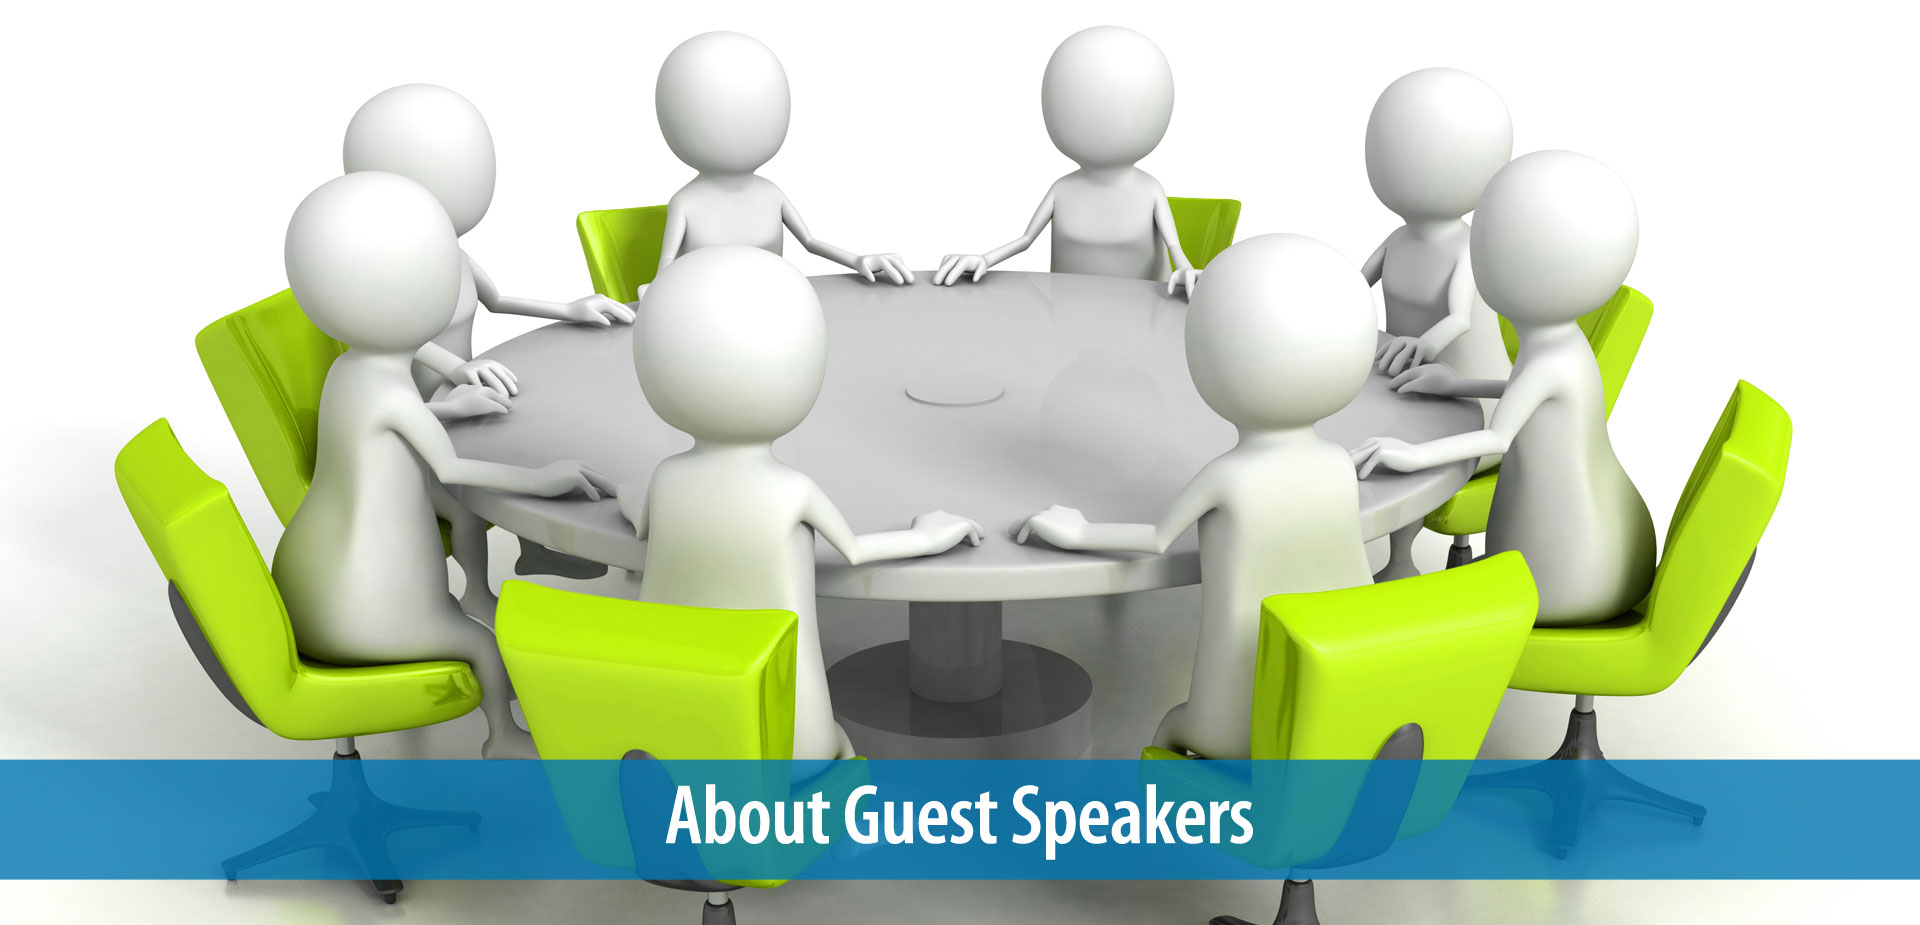 About Guest Speakers